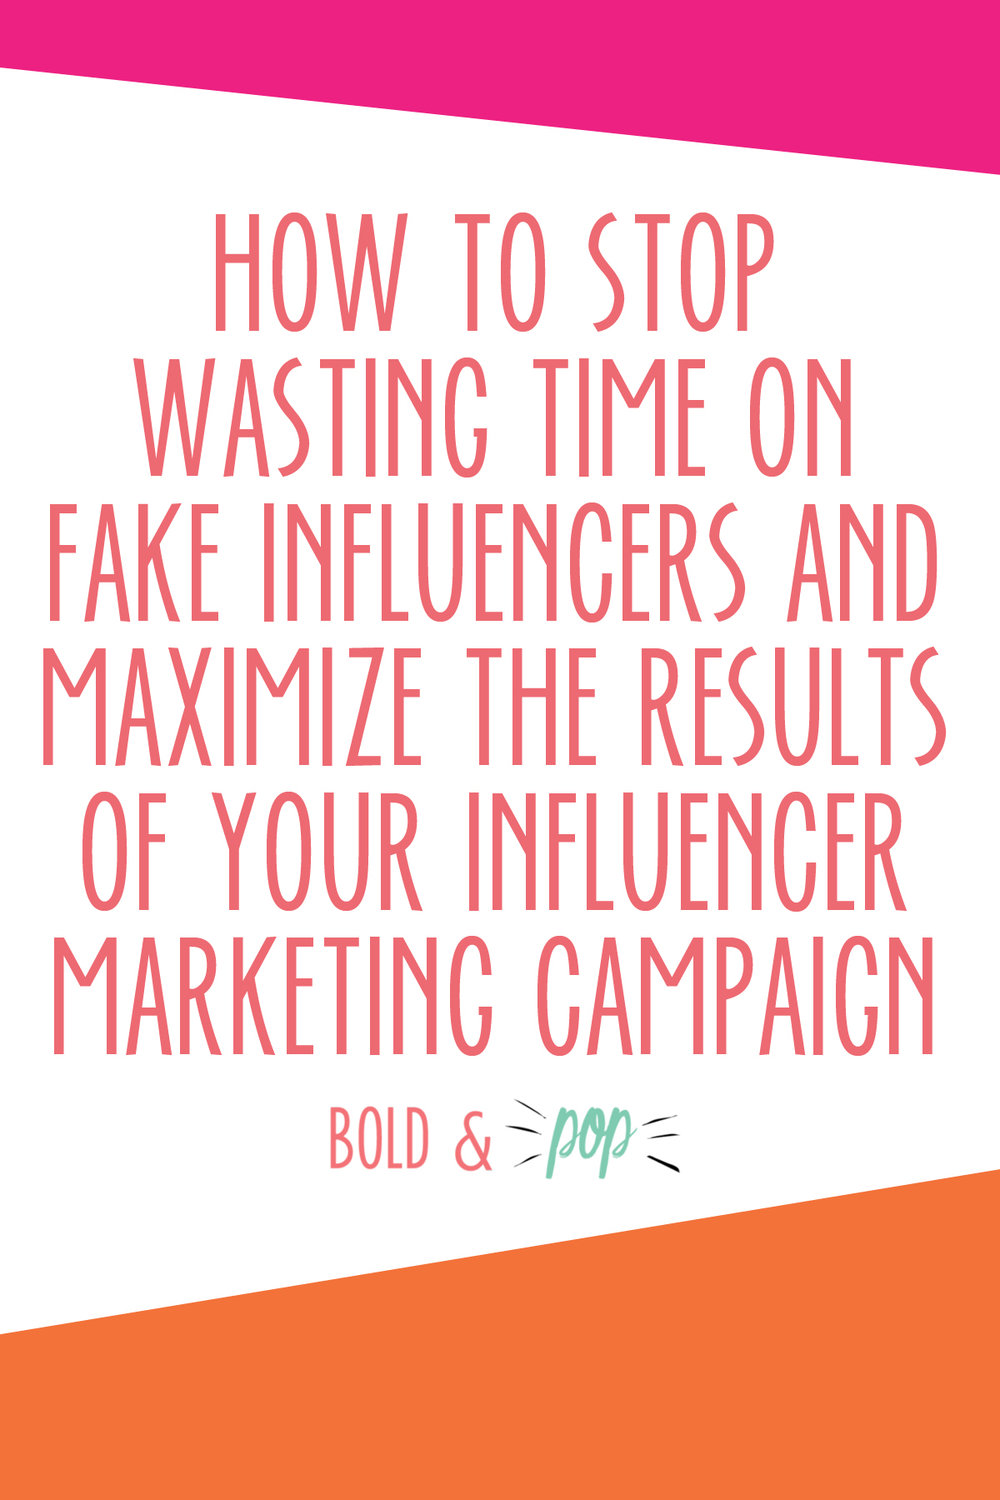 Bold & Pop : How to Stop Wasting time on Fake Influencers and Maximize the Results of your Influencer Marketing Campaign